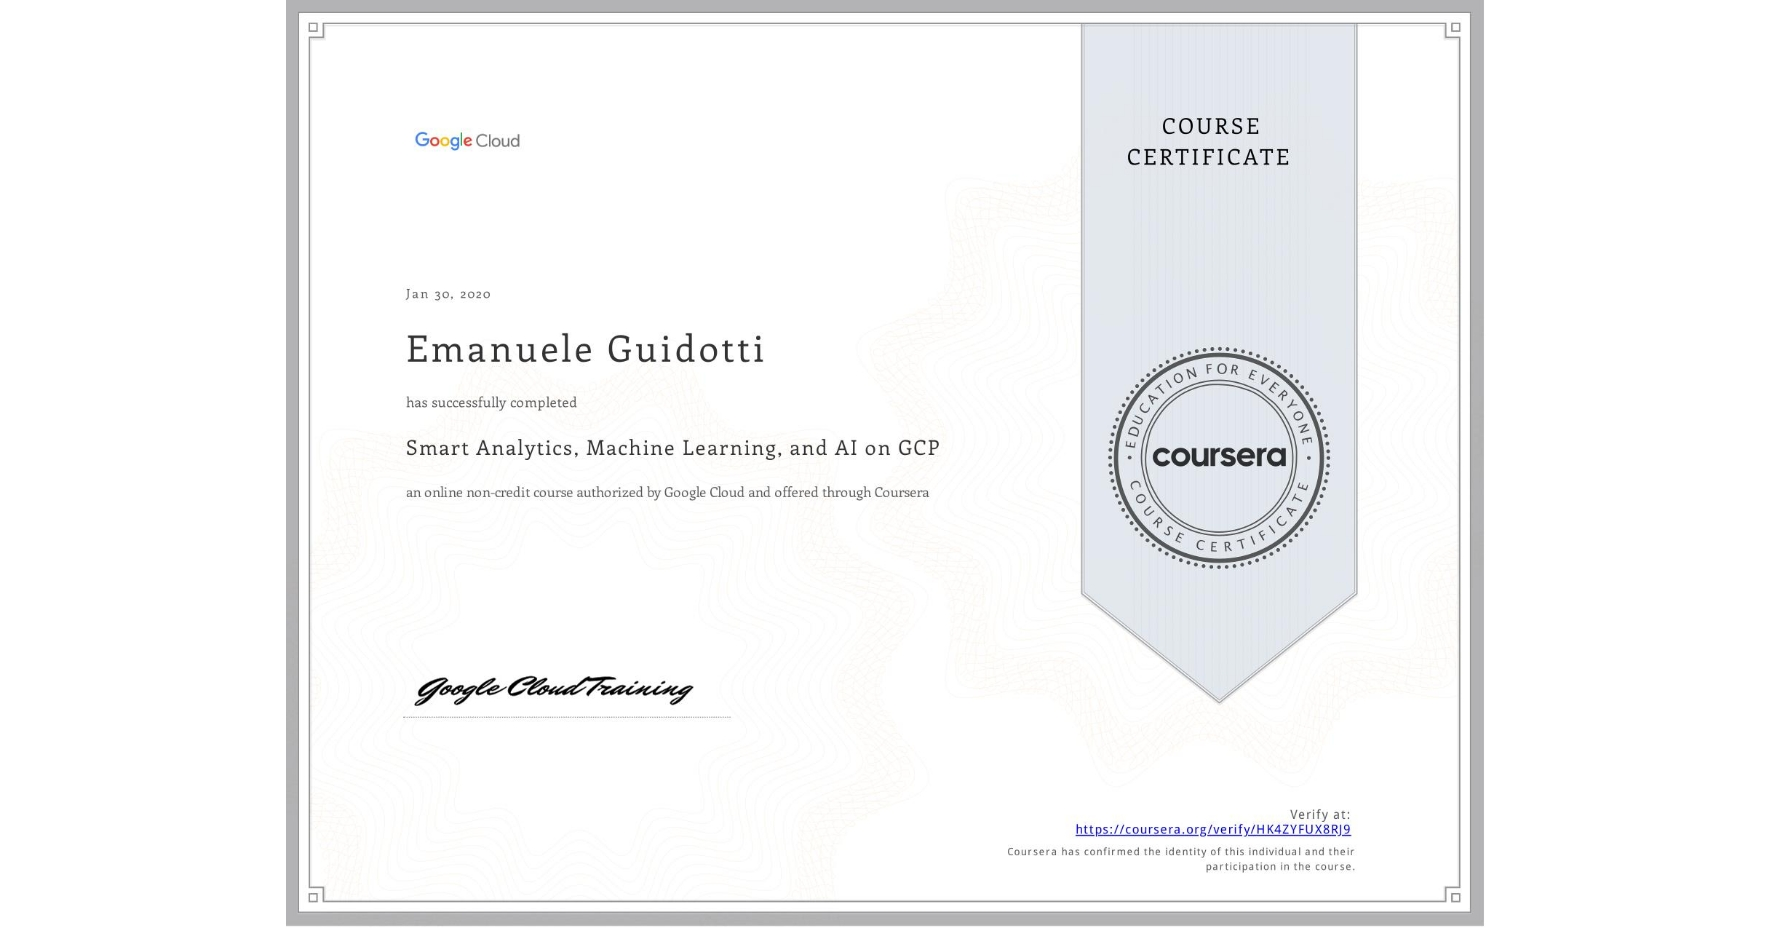 View certificate for Emanuele Guidotti, Smart Analytics, Machine Learning, and AI on GCP, an online non-credit course authorized by Google Cloud and offered through Coursera